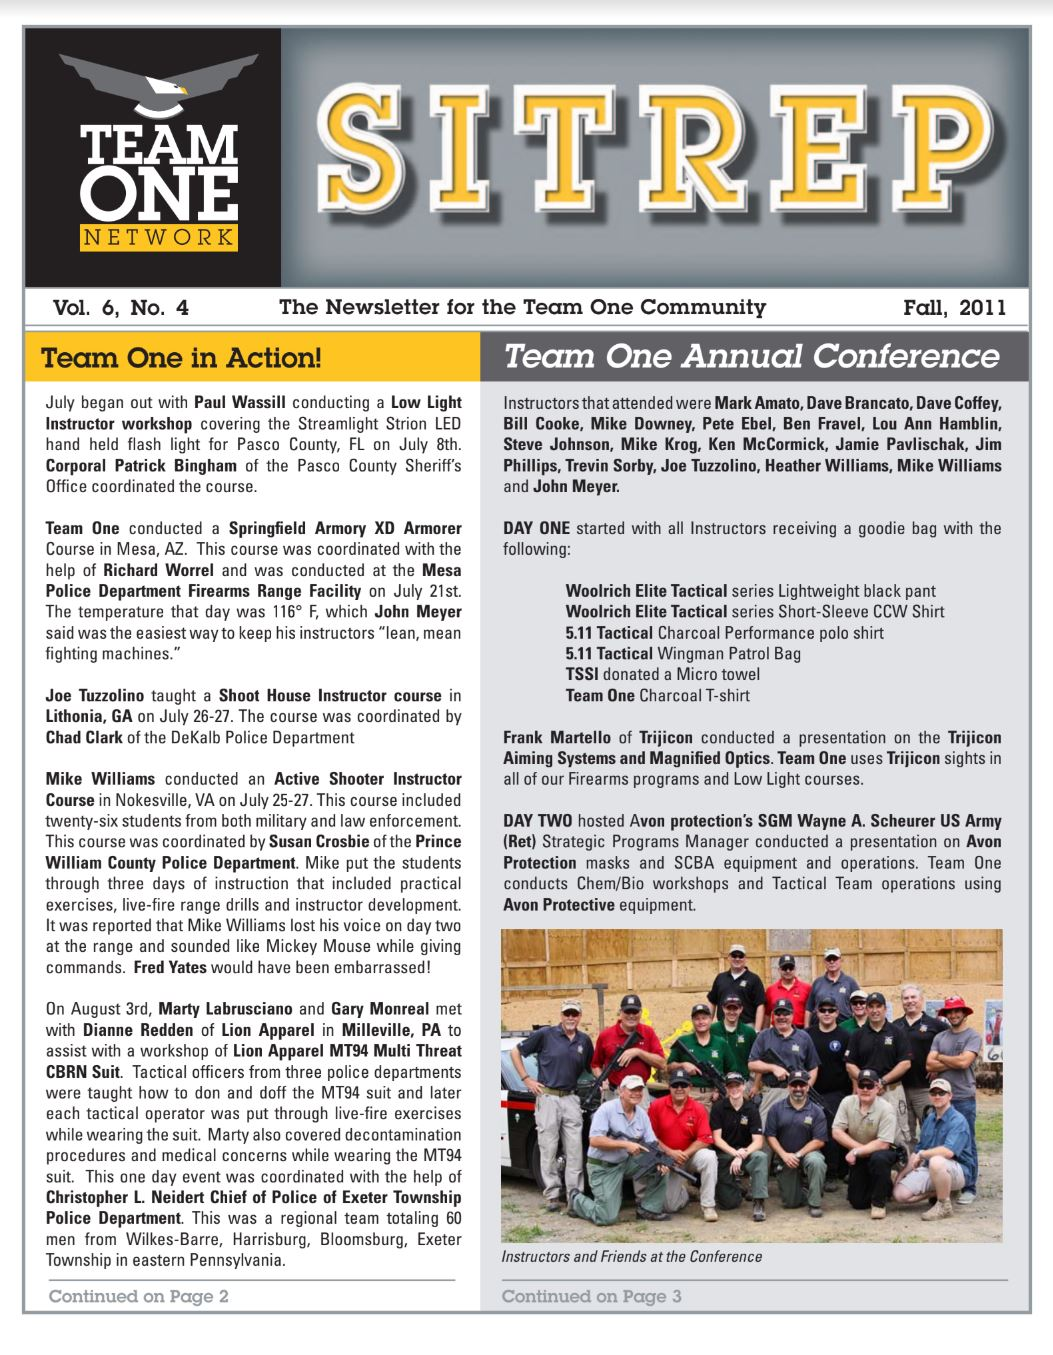 SITREP – Team One Network